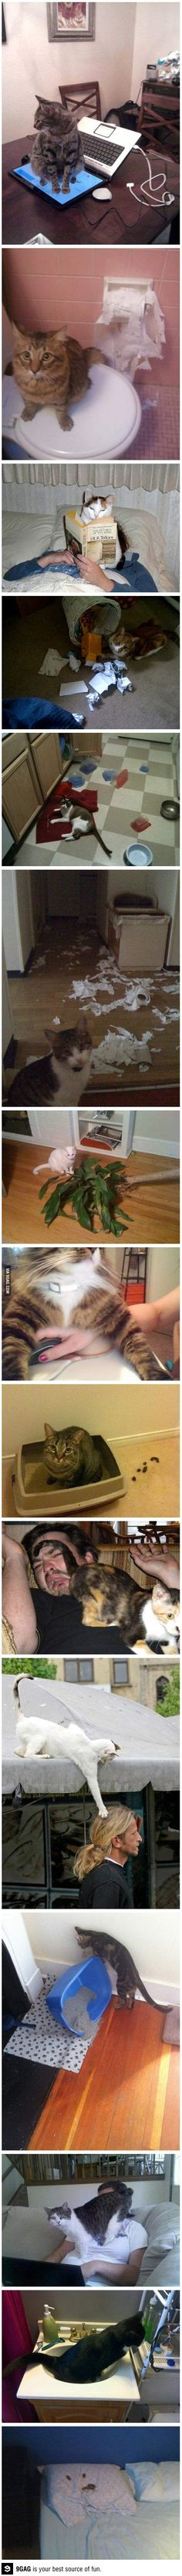 Cats in a nutshell